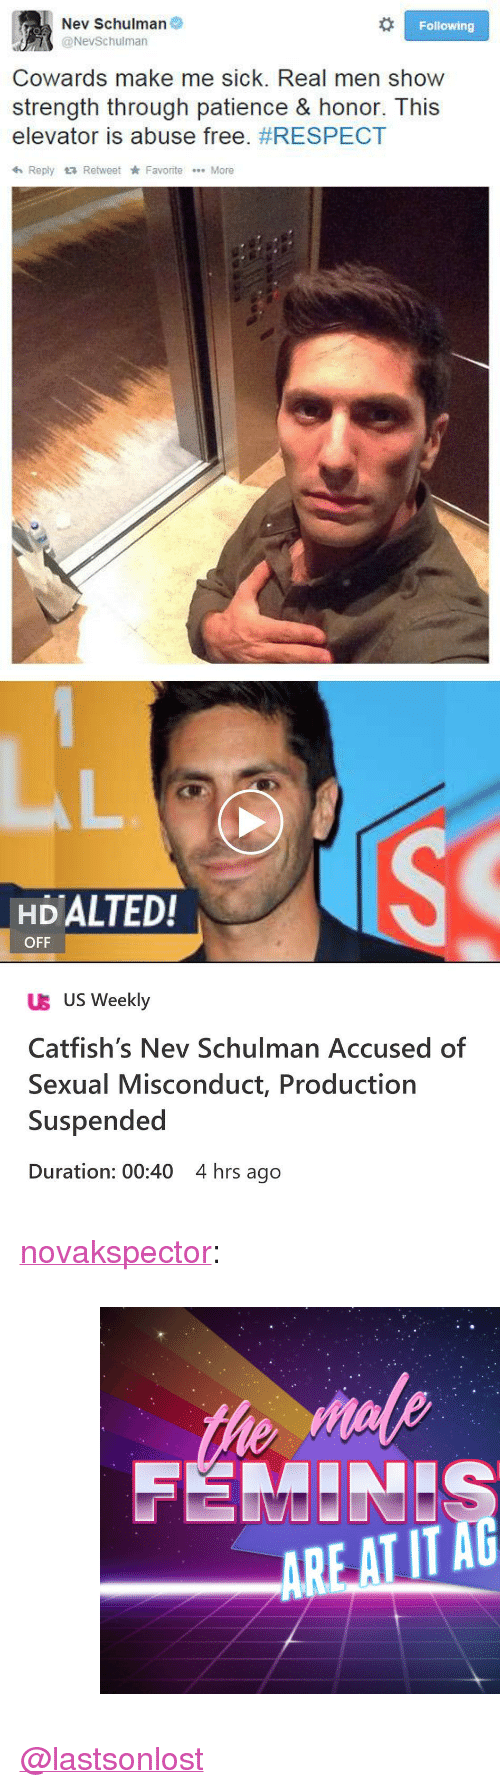 """duration: Nev Schulman  @NevSchulman  Following  Cowards make me sick. Real men show  strength through patience & honor. This  elevator is abuse free. #RESPECT  h Reply Retweet Favorite More   HDALTED!  OFF  UB US Weekly  Catfish's Nev Schulman Accused of  Sexual Misconduct, Production  Suspended  Duration: 00:40 4 hrs ago <p><a href=""""http://novakspector.tumblr.com/post/174005481234"""" class=""""tumblr_blog"""">novakspector</a>:</p><blockquote><figure class=""""tmblr-full"""" data-orig-height=""""537"""" data-orig-width=""""750""""><img src=""""https://78.media.tumblr.com/c25ac69782dcbdb60ec3f7b276e7dc76/tumblr_inline_p8wgq6izIM1r5htxe_540.jpg"""" data-orig-height=""""537"""" data-orig-width=""""750""""/></figure></blockquote>  <p><a class=""""tumblelog"""" href=""""https://tmblr.co/mPxVYxWuKR2CMbqrueo4UEQ"""">@lastsonlost</a> </p>"""